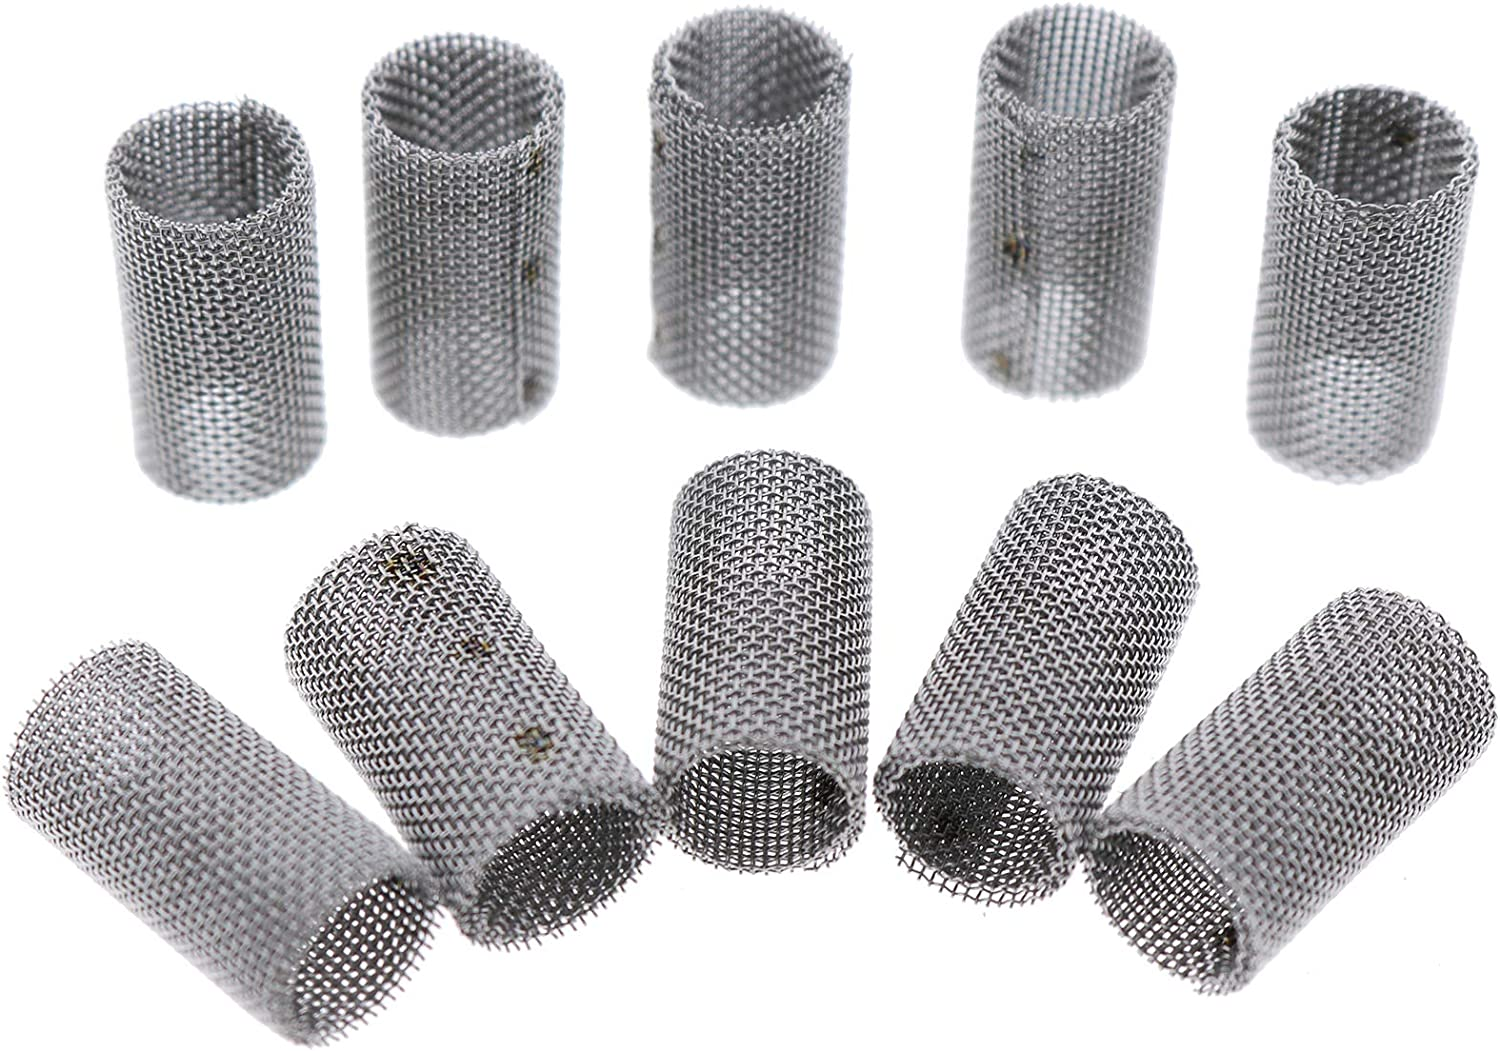 zt truck Low price parts 10X Stainless Steel Plug Burner Ranking TOP10 Pin Glow Strainer